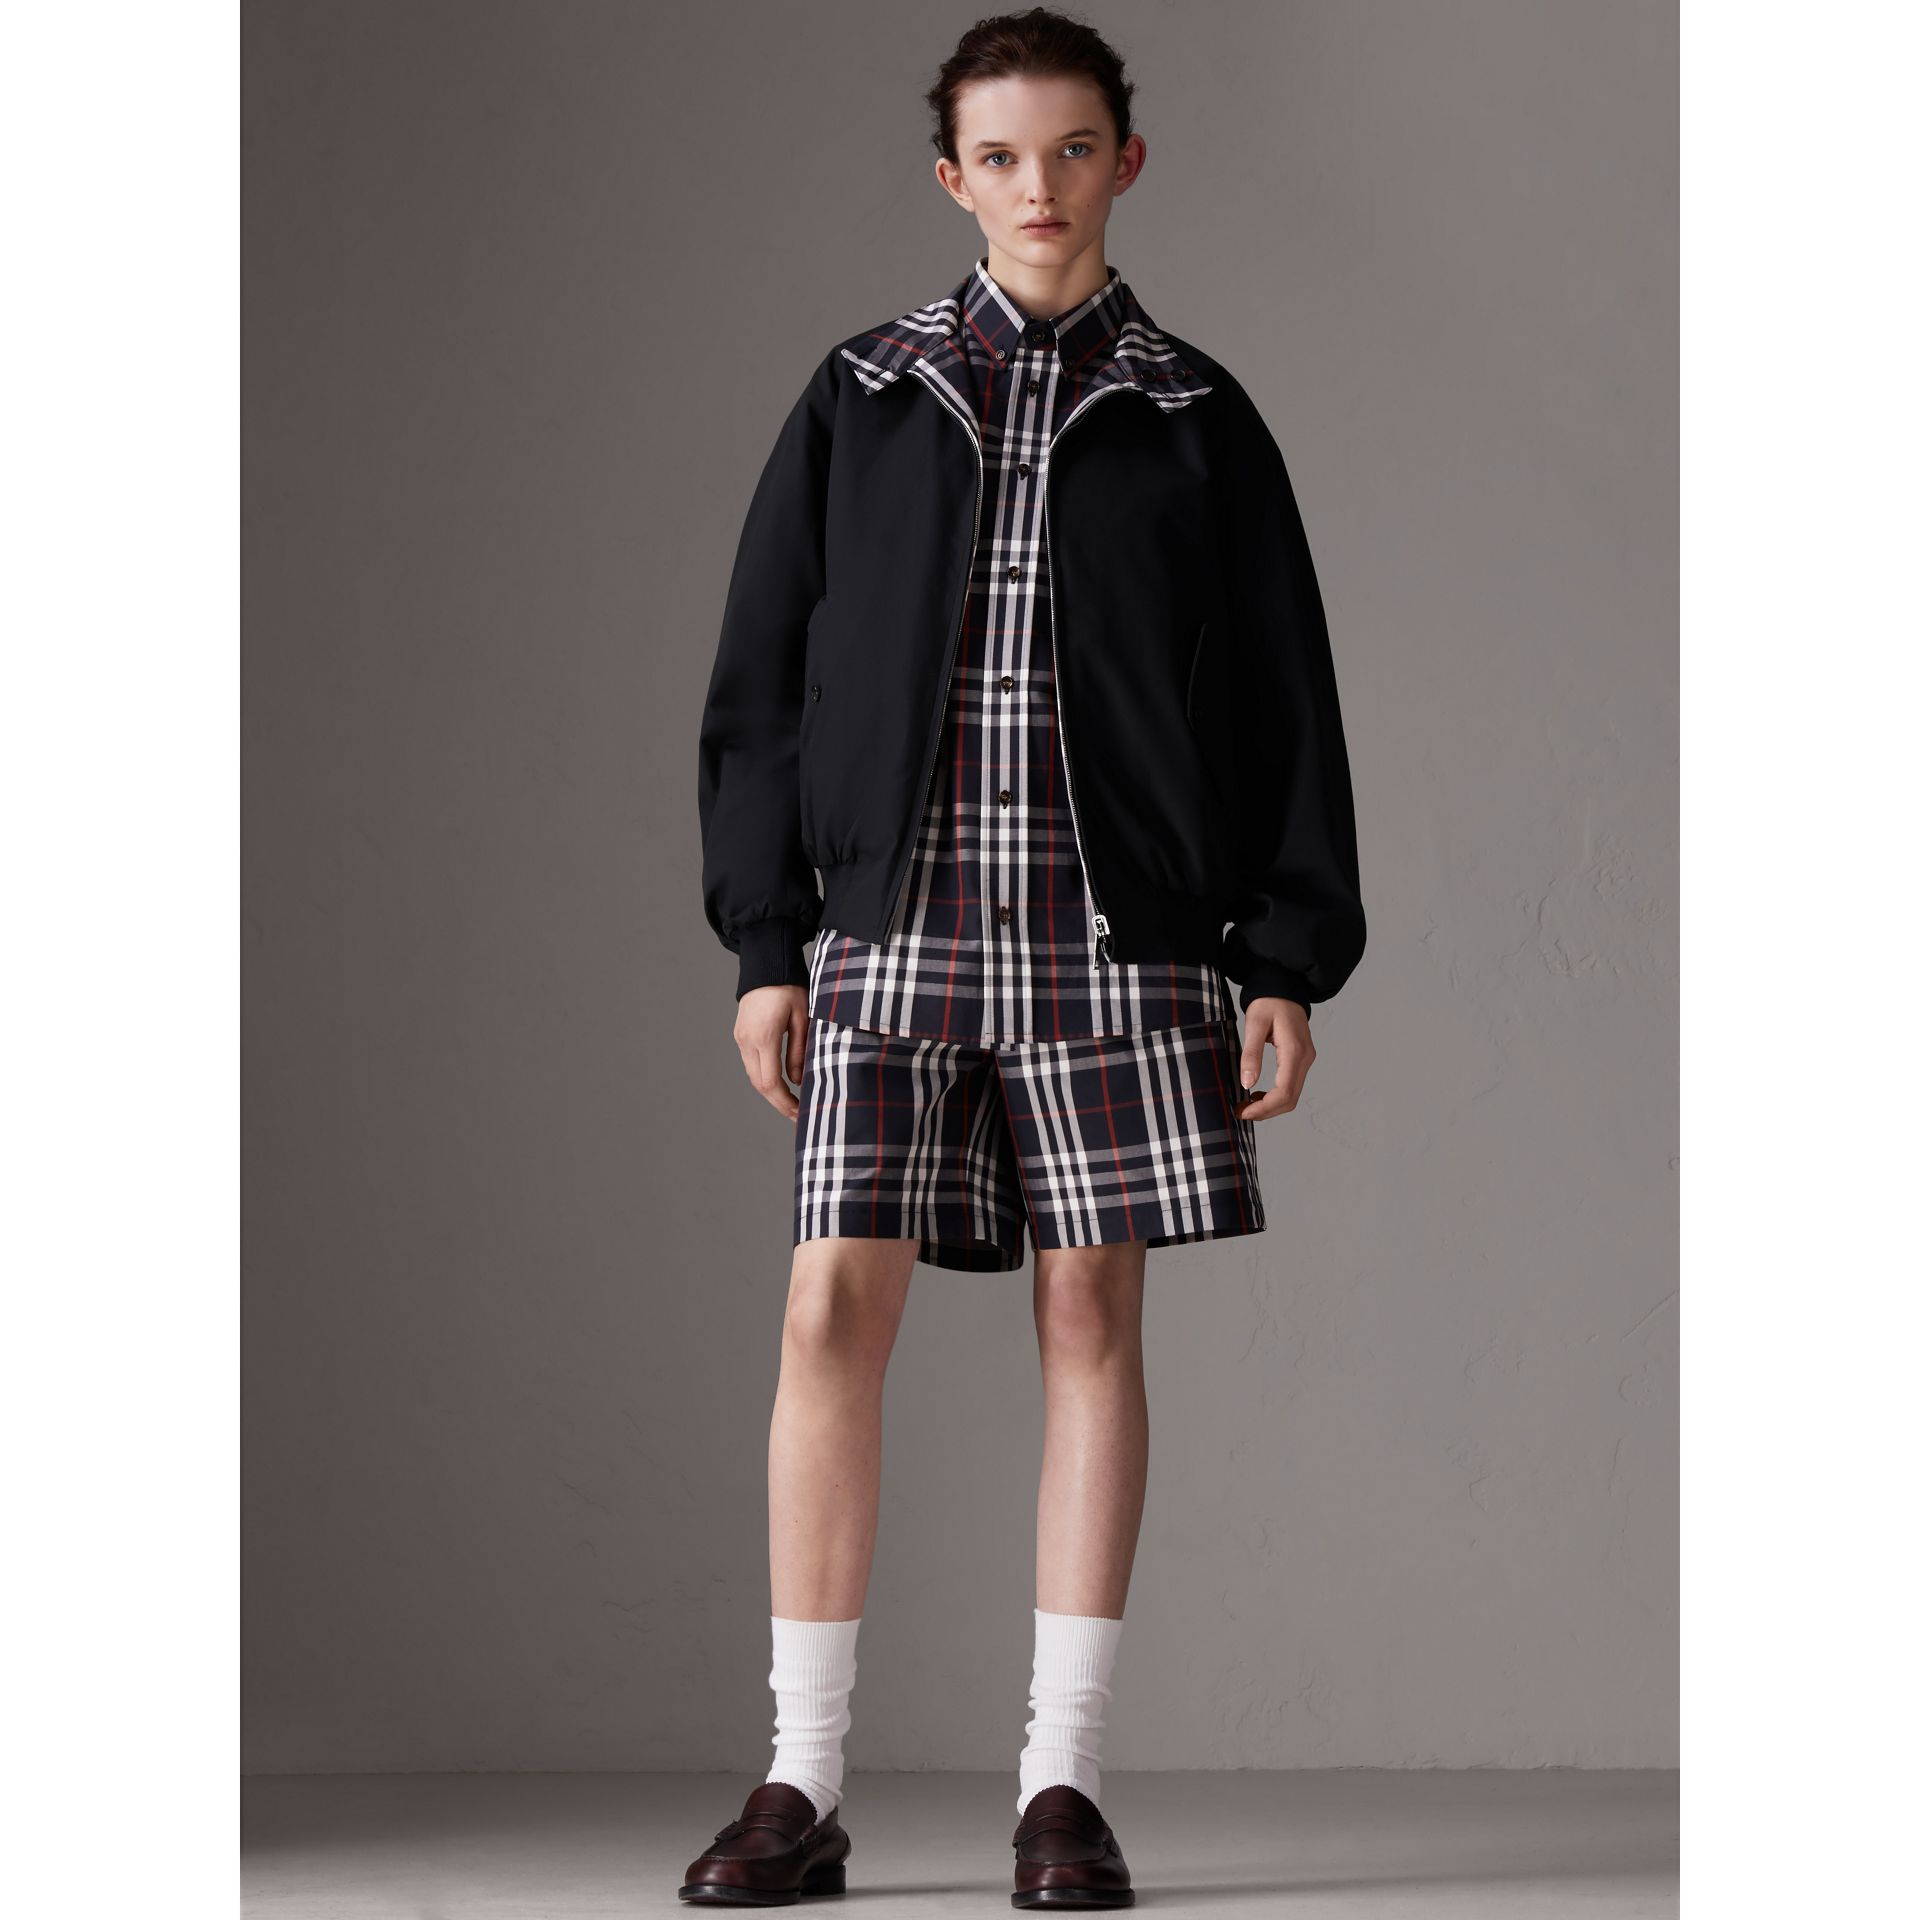 Gosha x Burberry Tailored Shorts in Navy | Burberry - gallery image 3